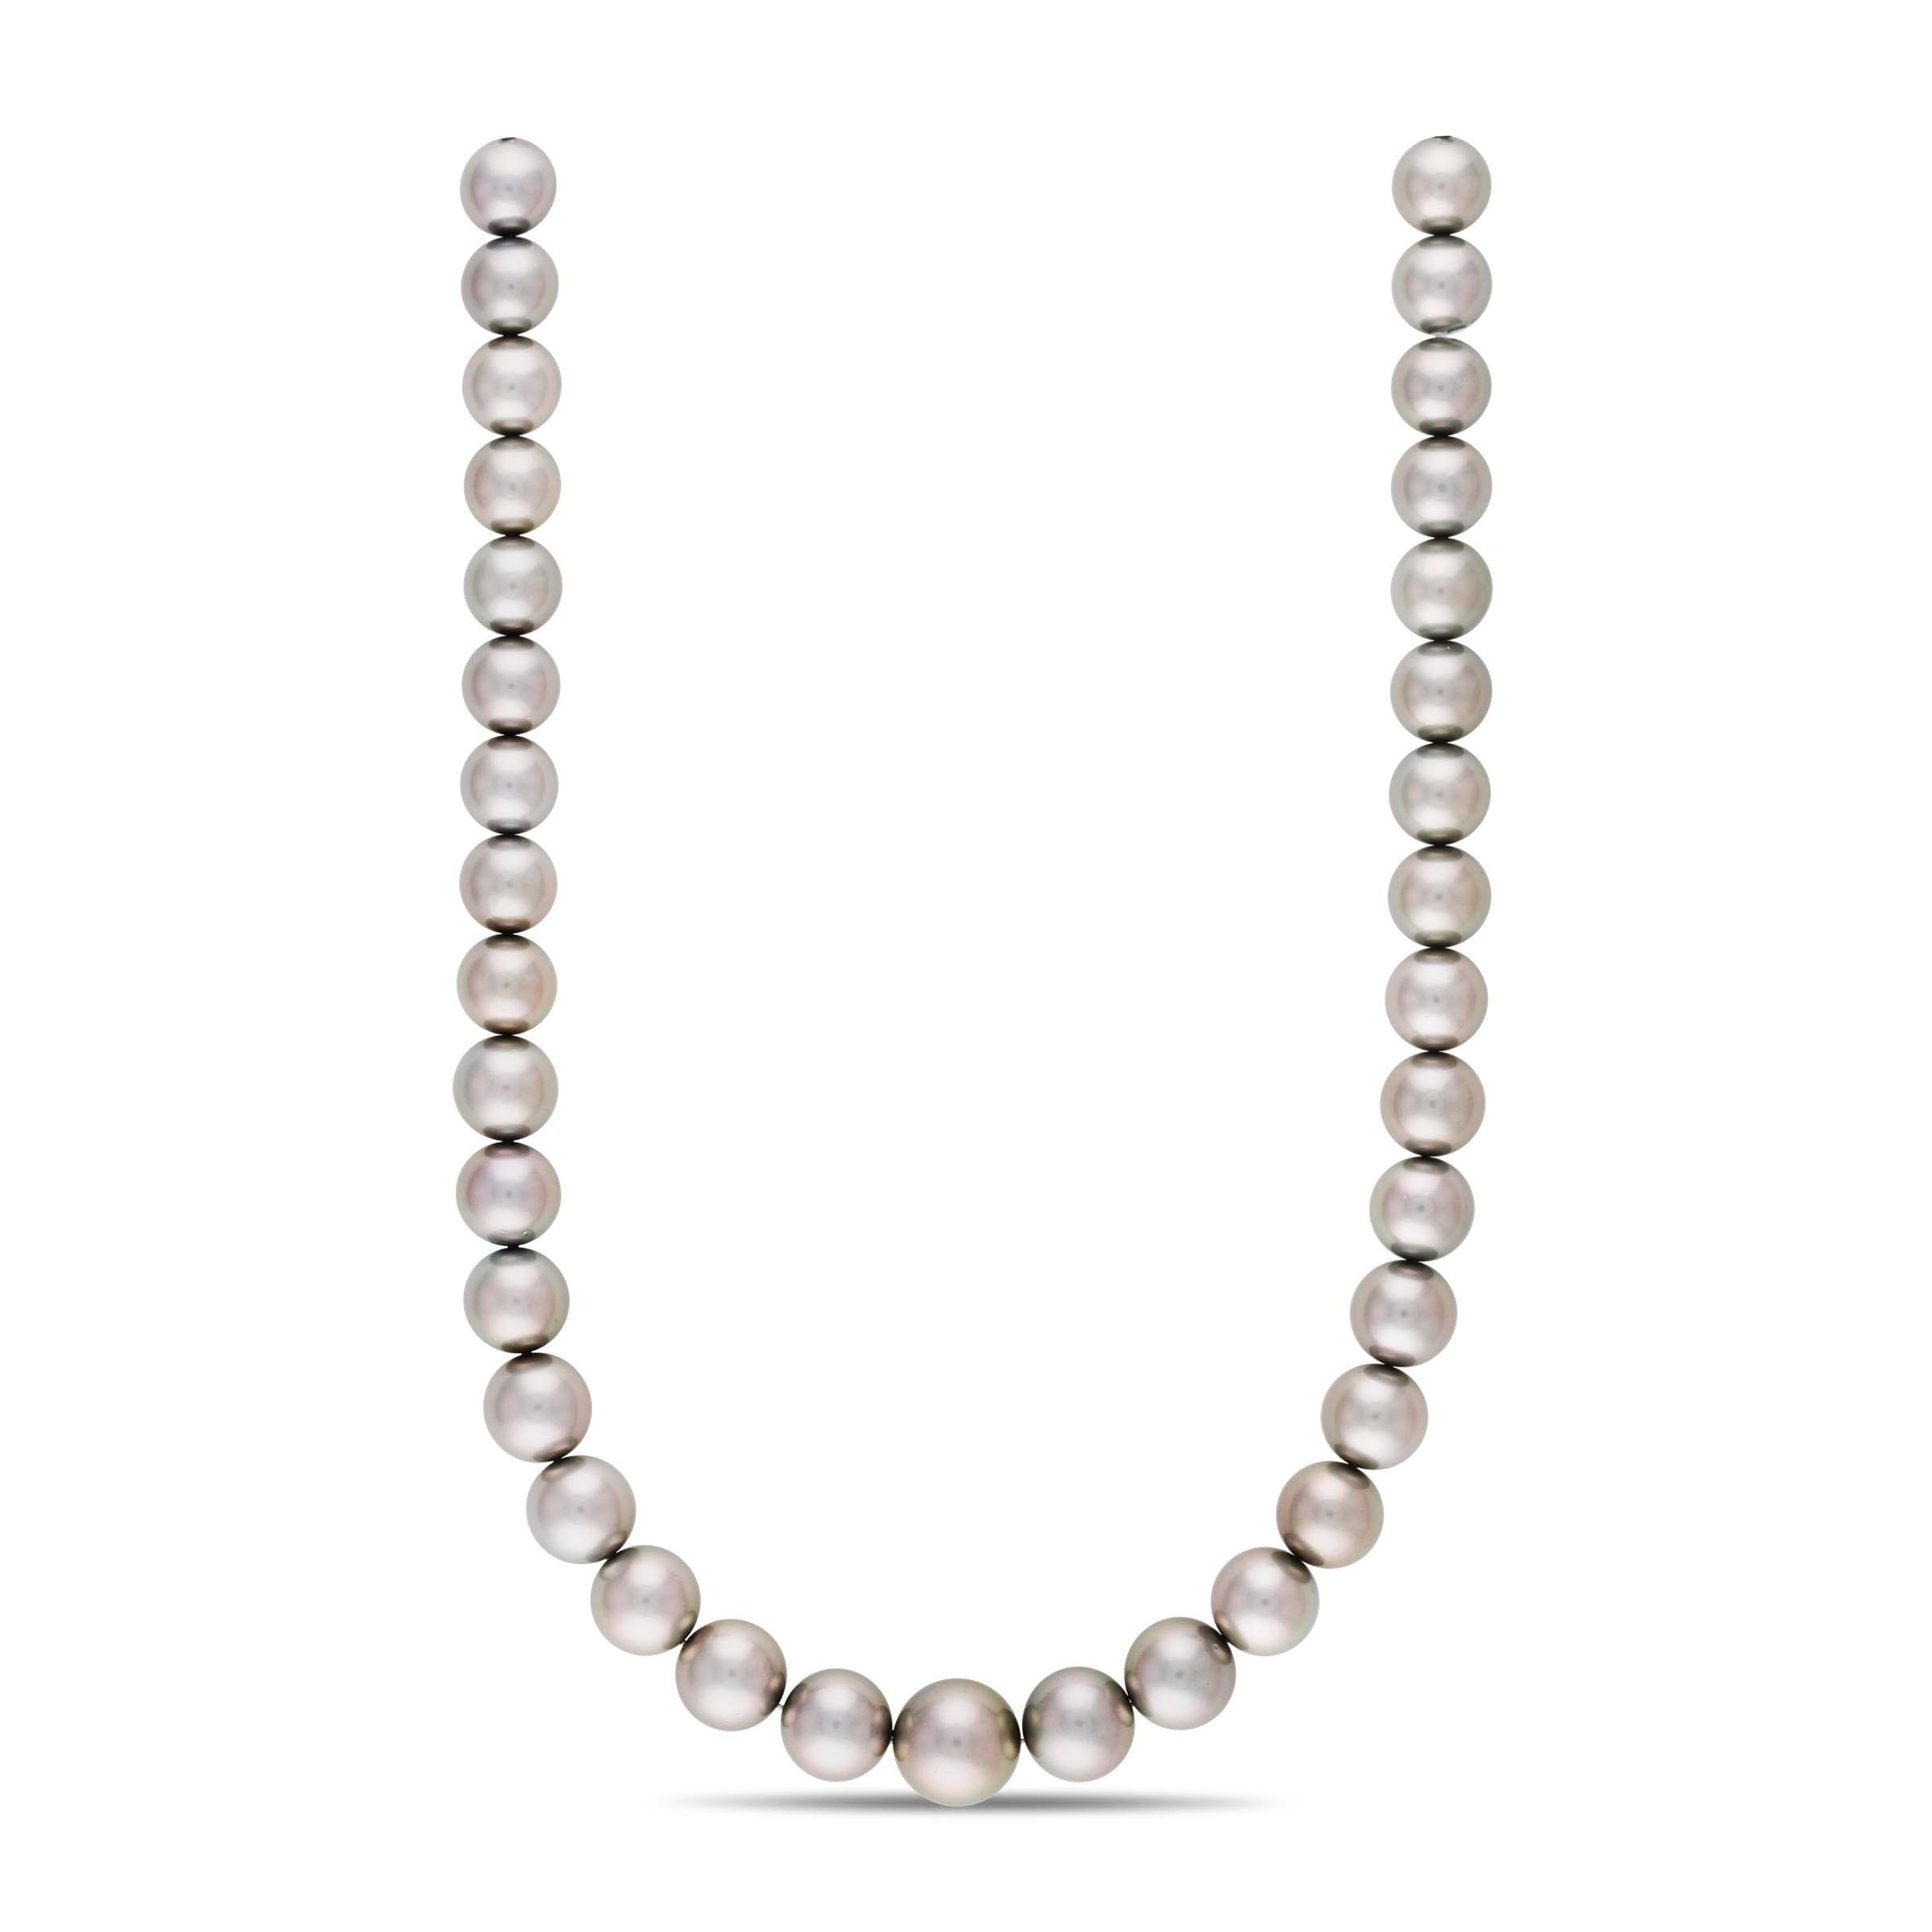 18-inch 11.0-14.5 mm AAA Round Tahitian Pearl Necklace